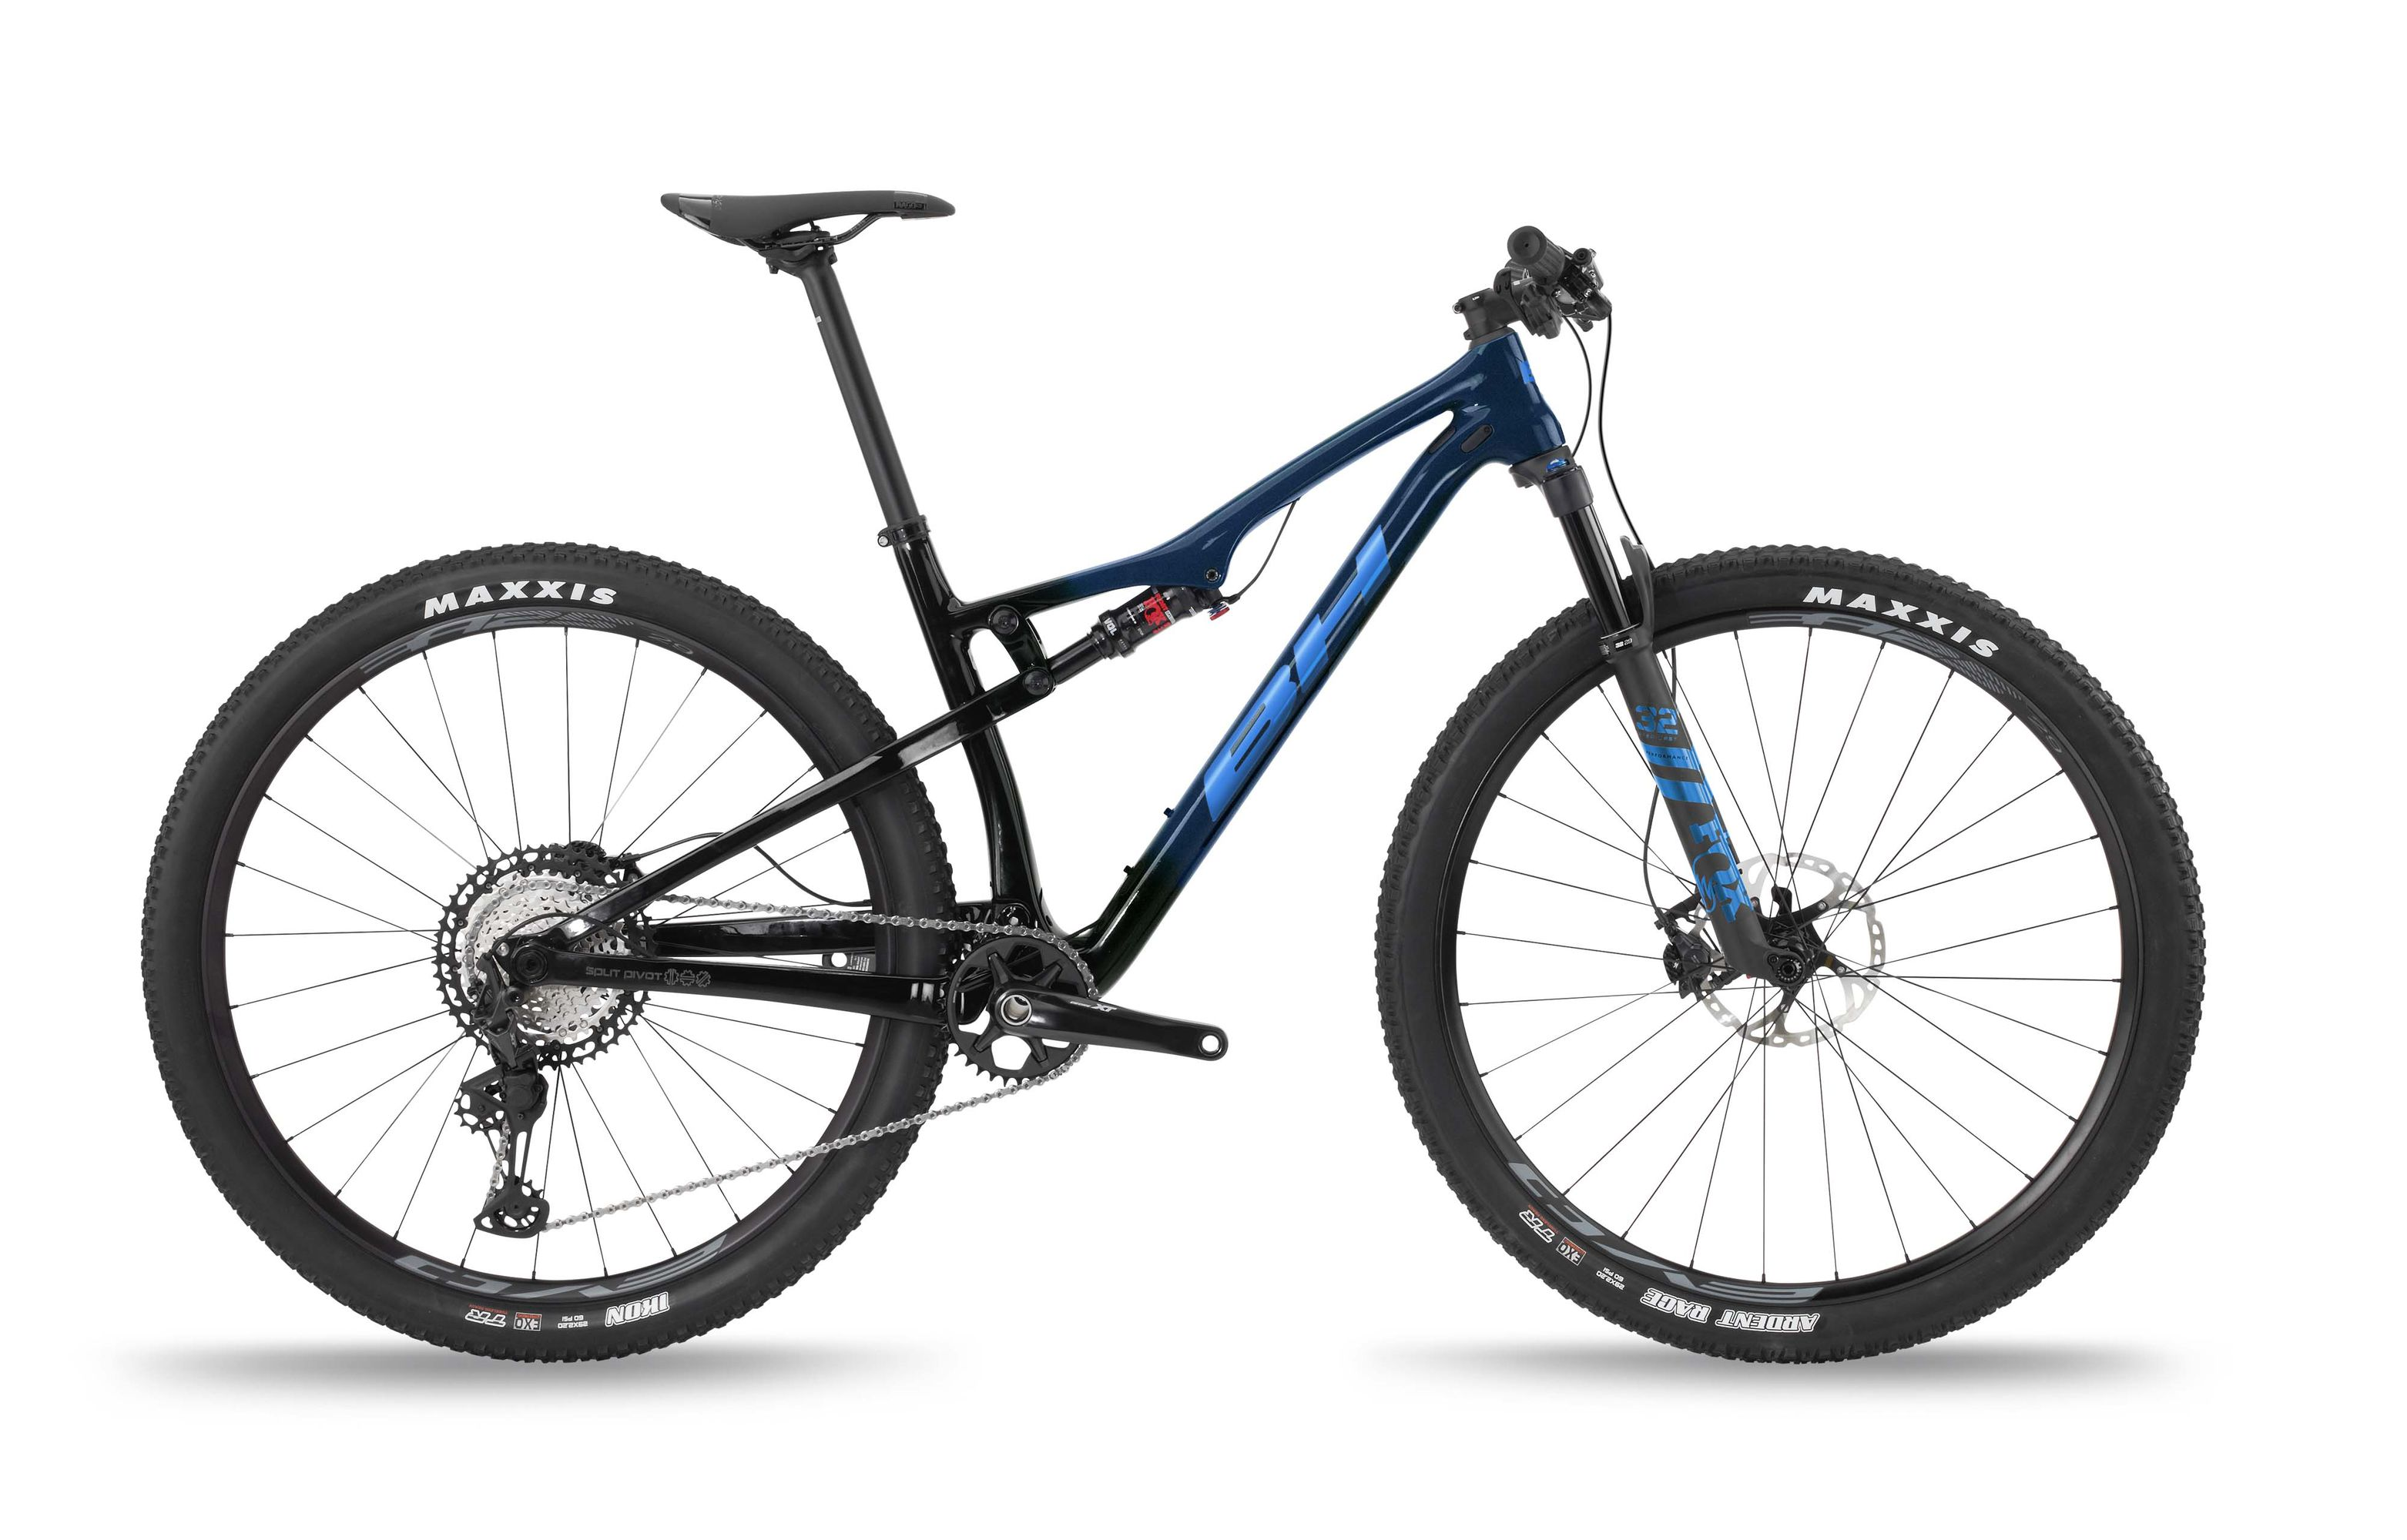 LYNX RACE CARBON RC 7.0 - BH Bikes